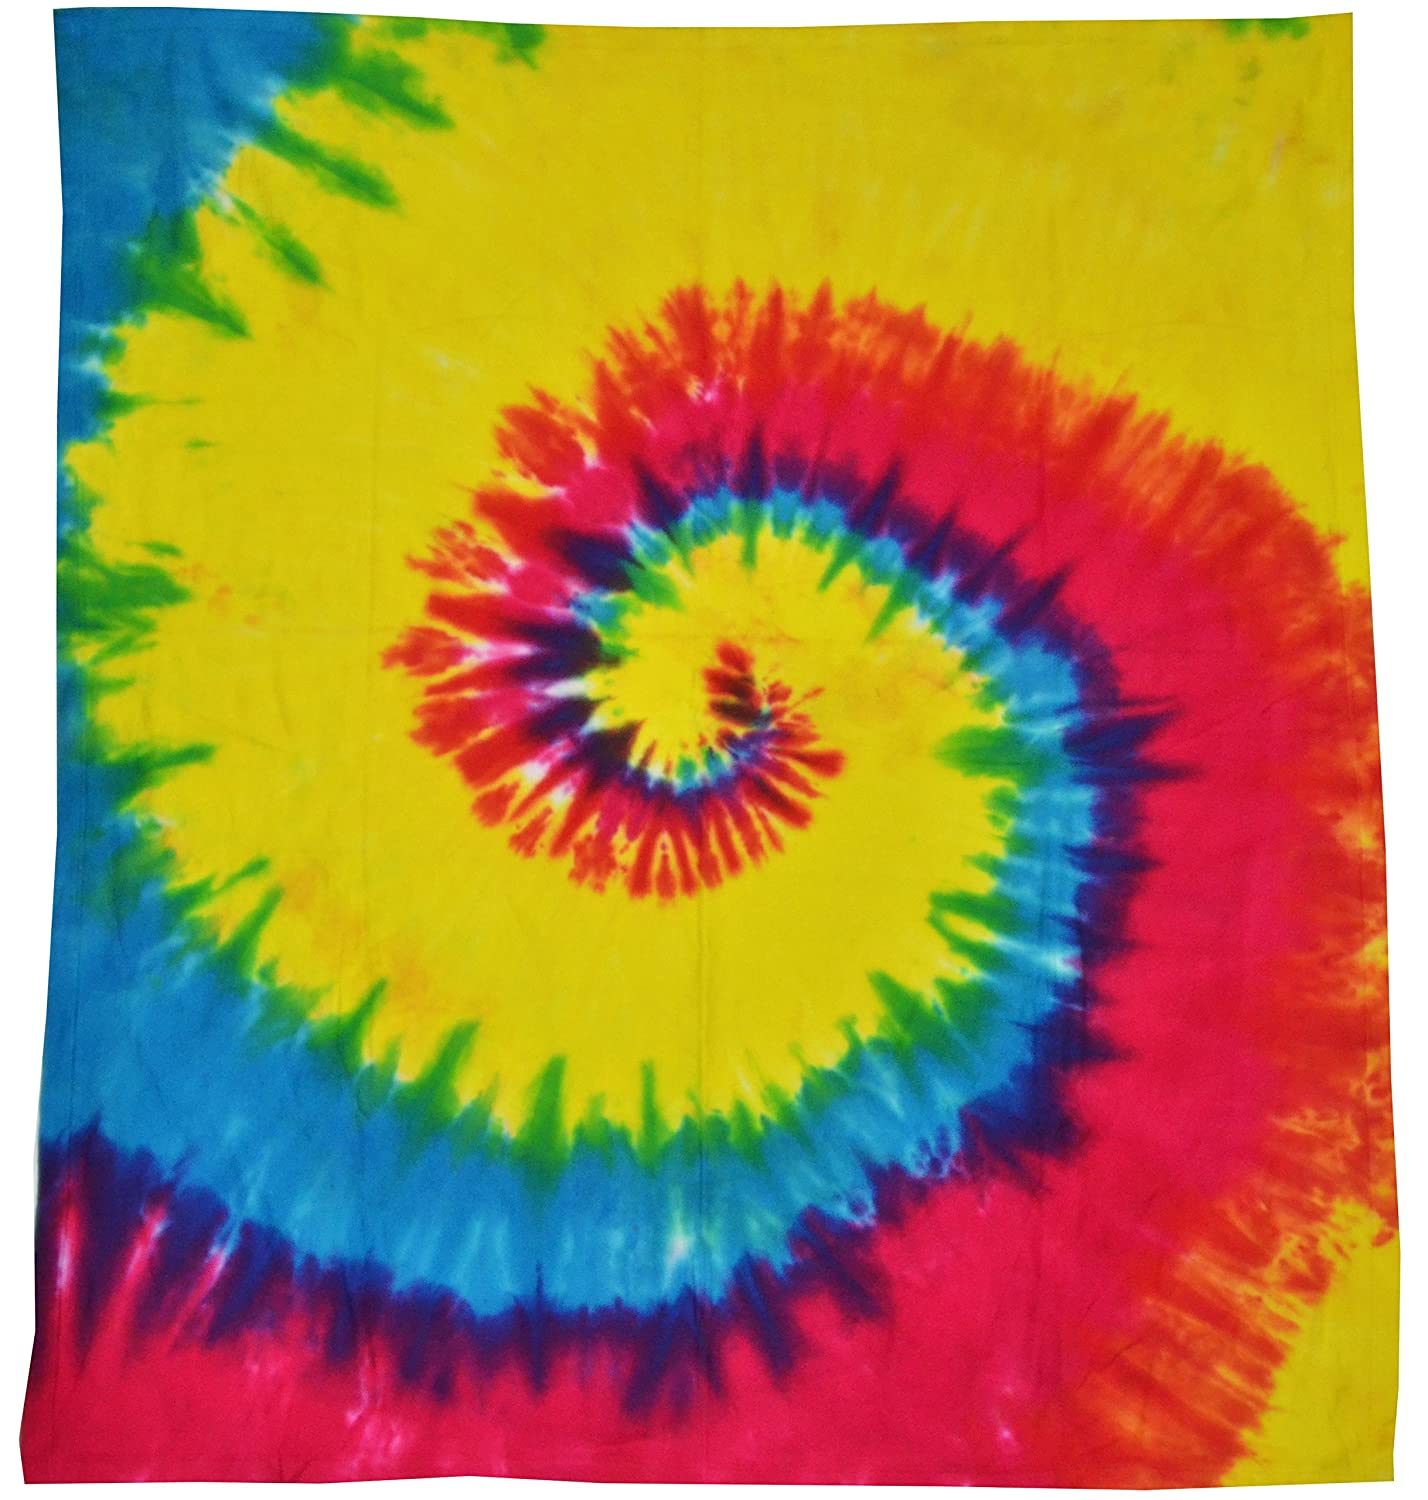 Amazon.com: Colortone Tie Dye Blanket Cloud Blue: Home & Kitchen